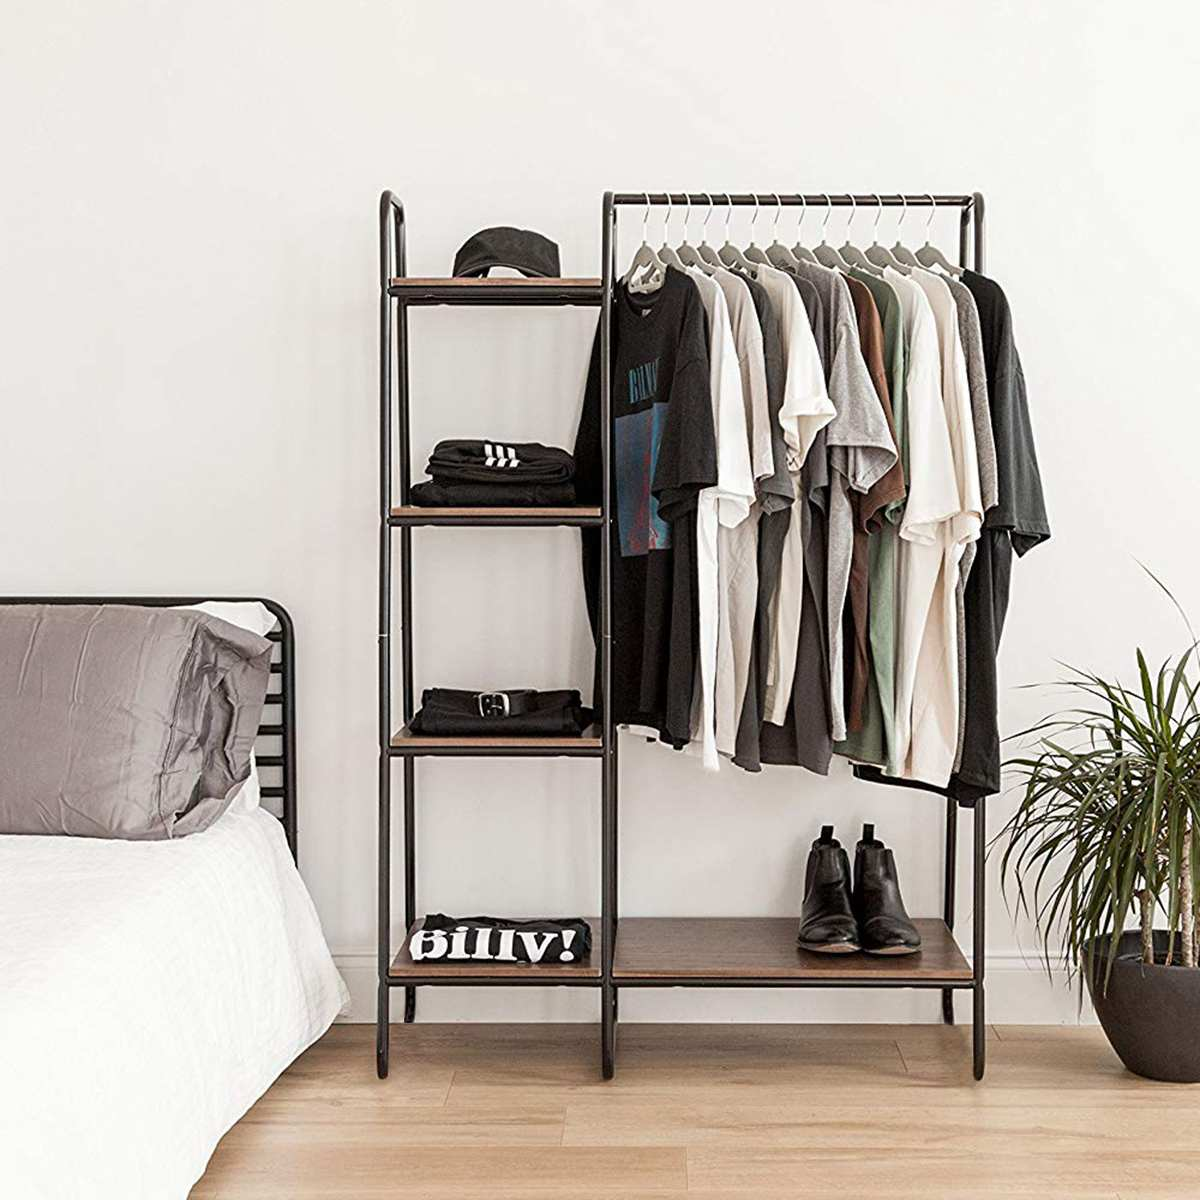 Single Rod Drying Rack Floor Stand Drying Rack Simple Clothes Storage Shelf Folding Indoor Balcony Clothes Racks